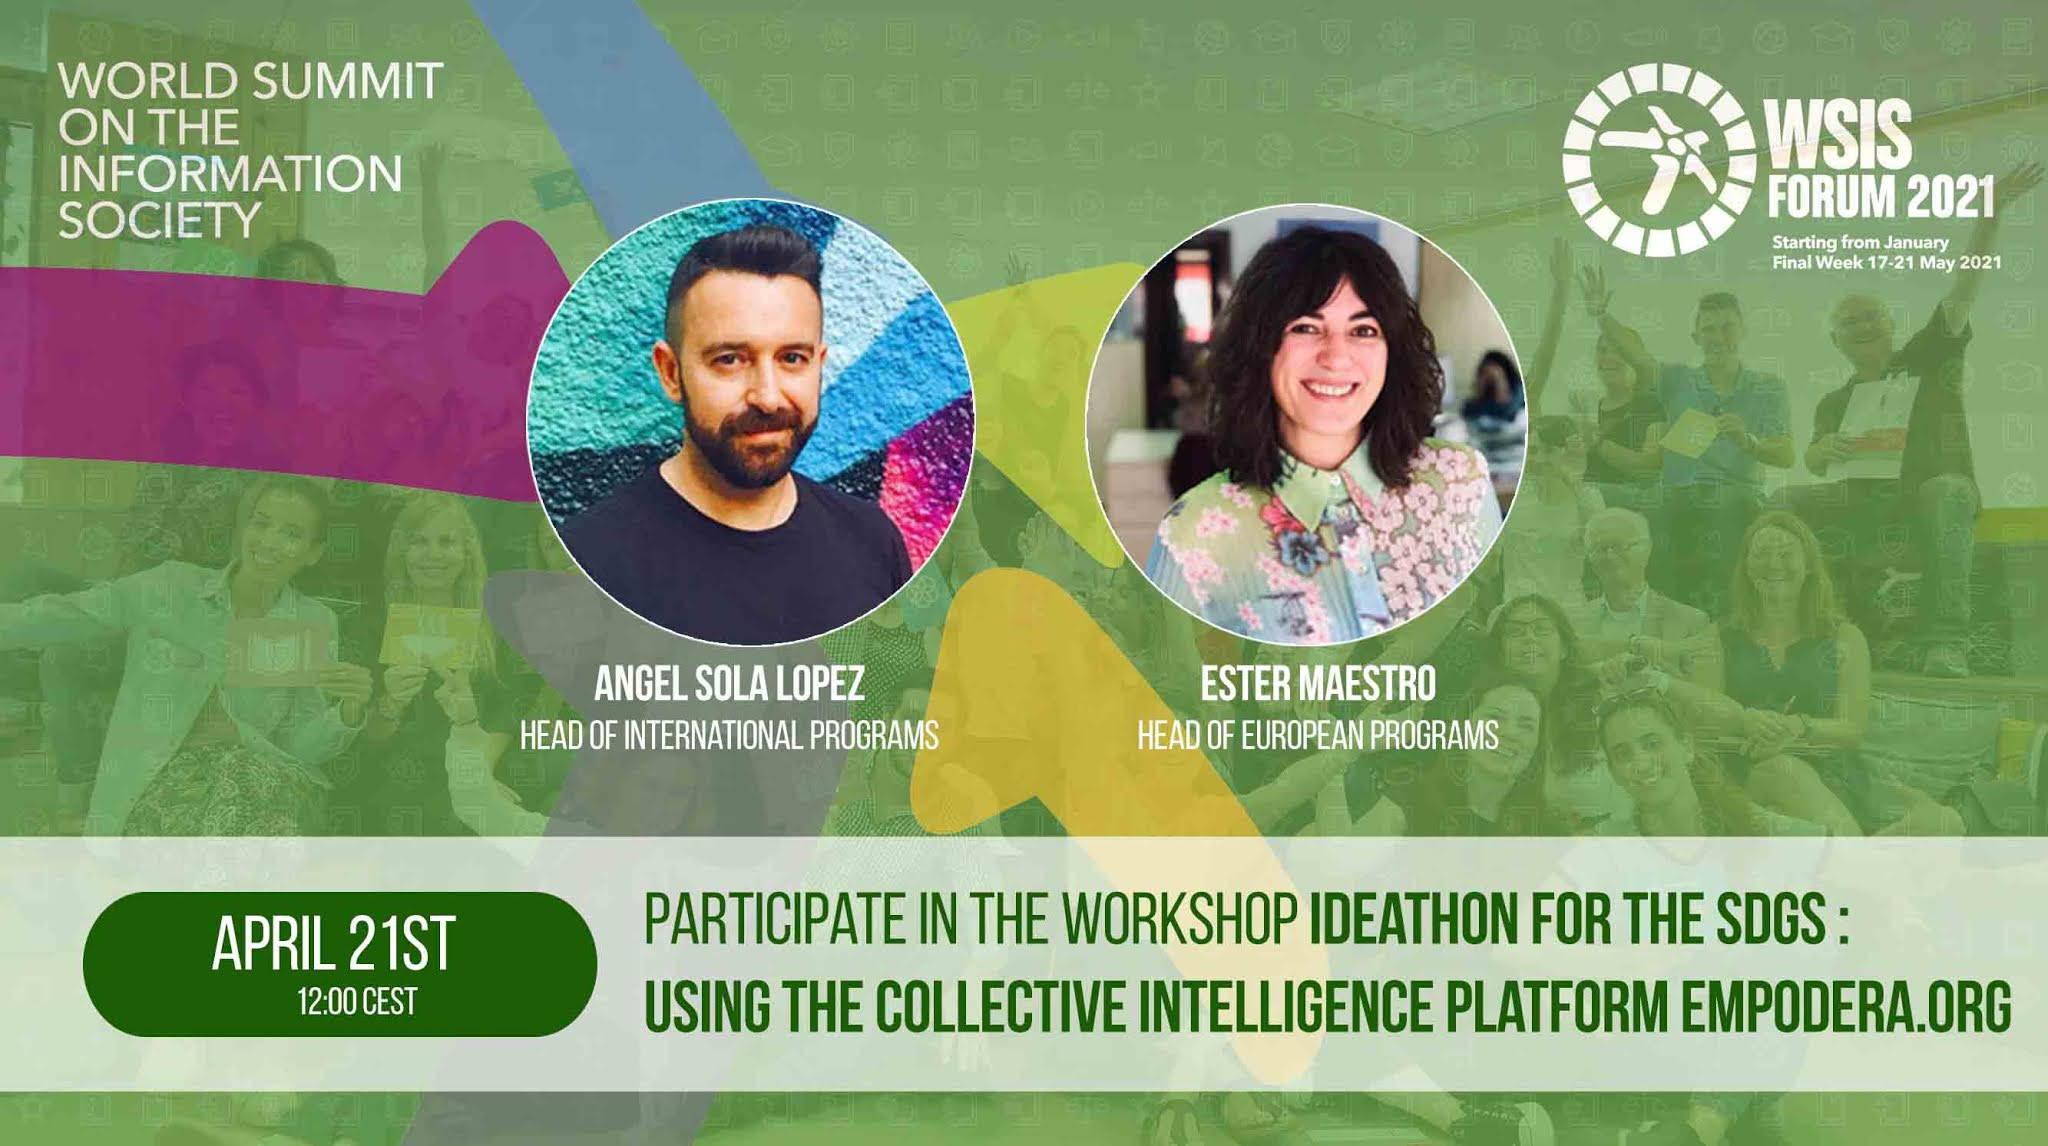 Ideathon for the SDGs in WSIS Forum: Using the Collective Intelligence Platform Empodera.org to create collaborative solutions